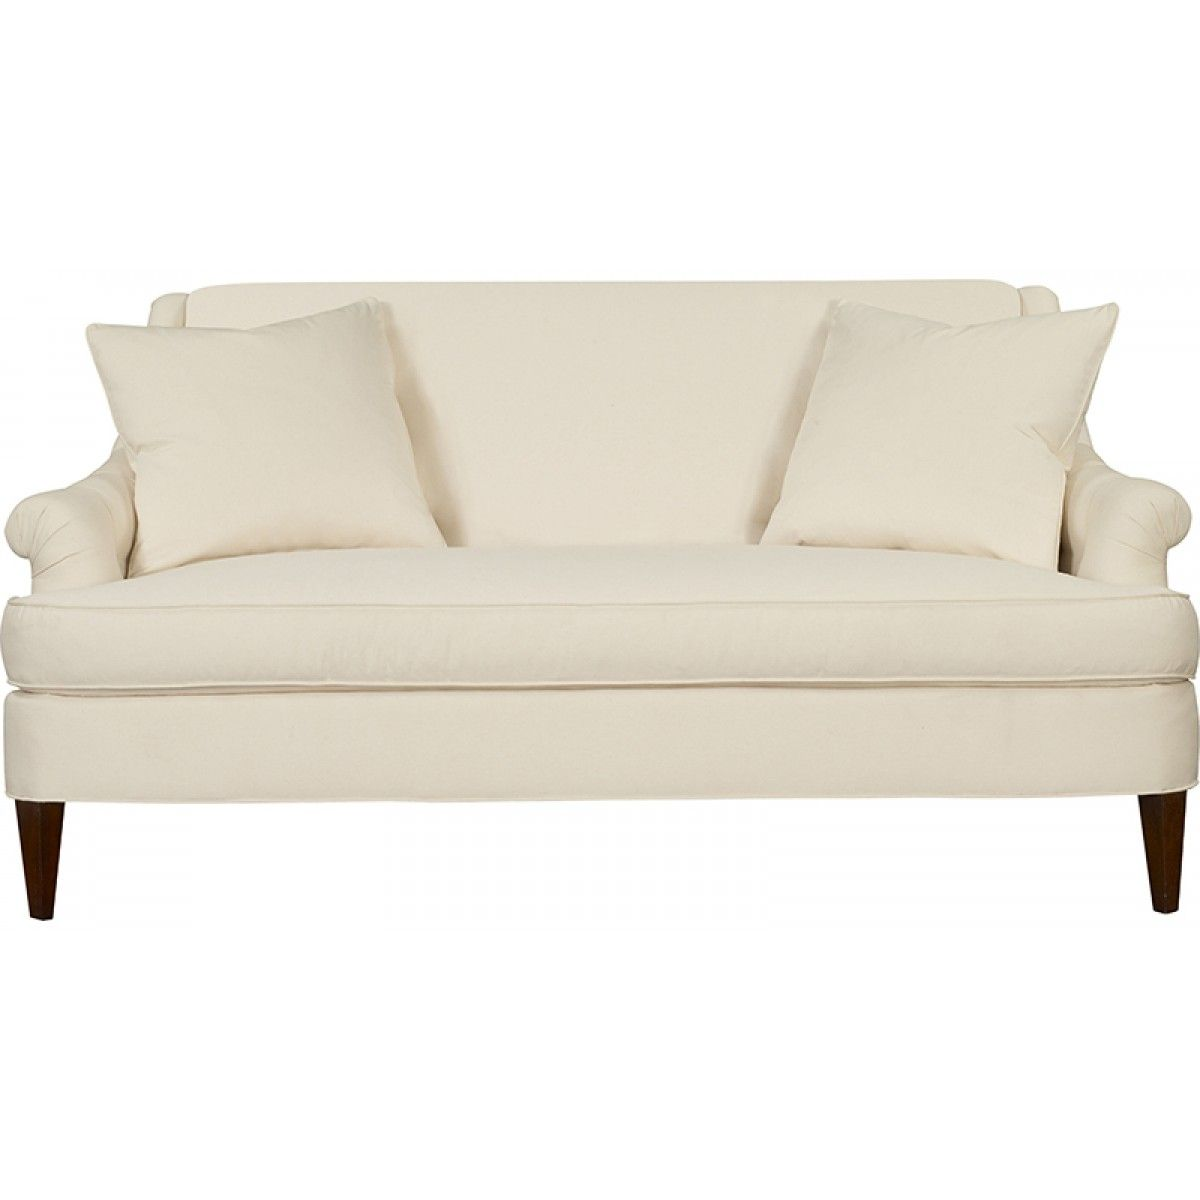 Hickory Chair 1911 Collection Marler Apartment Sofa 68""